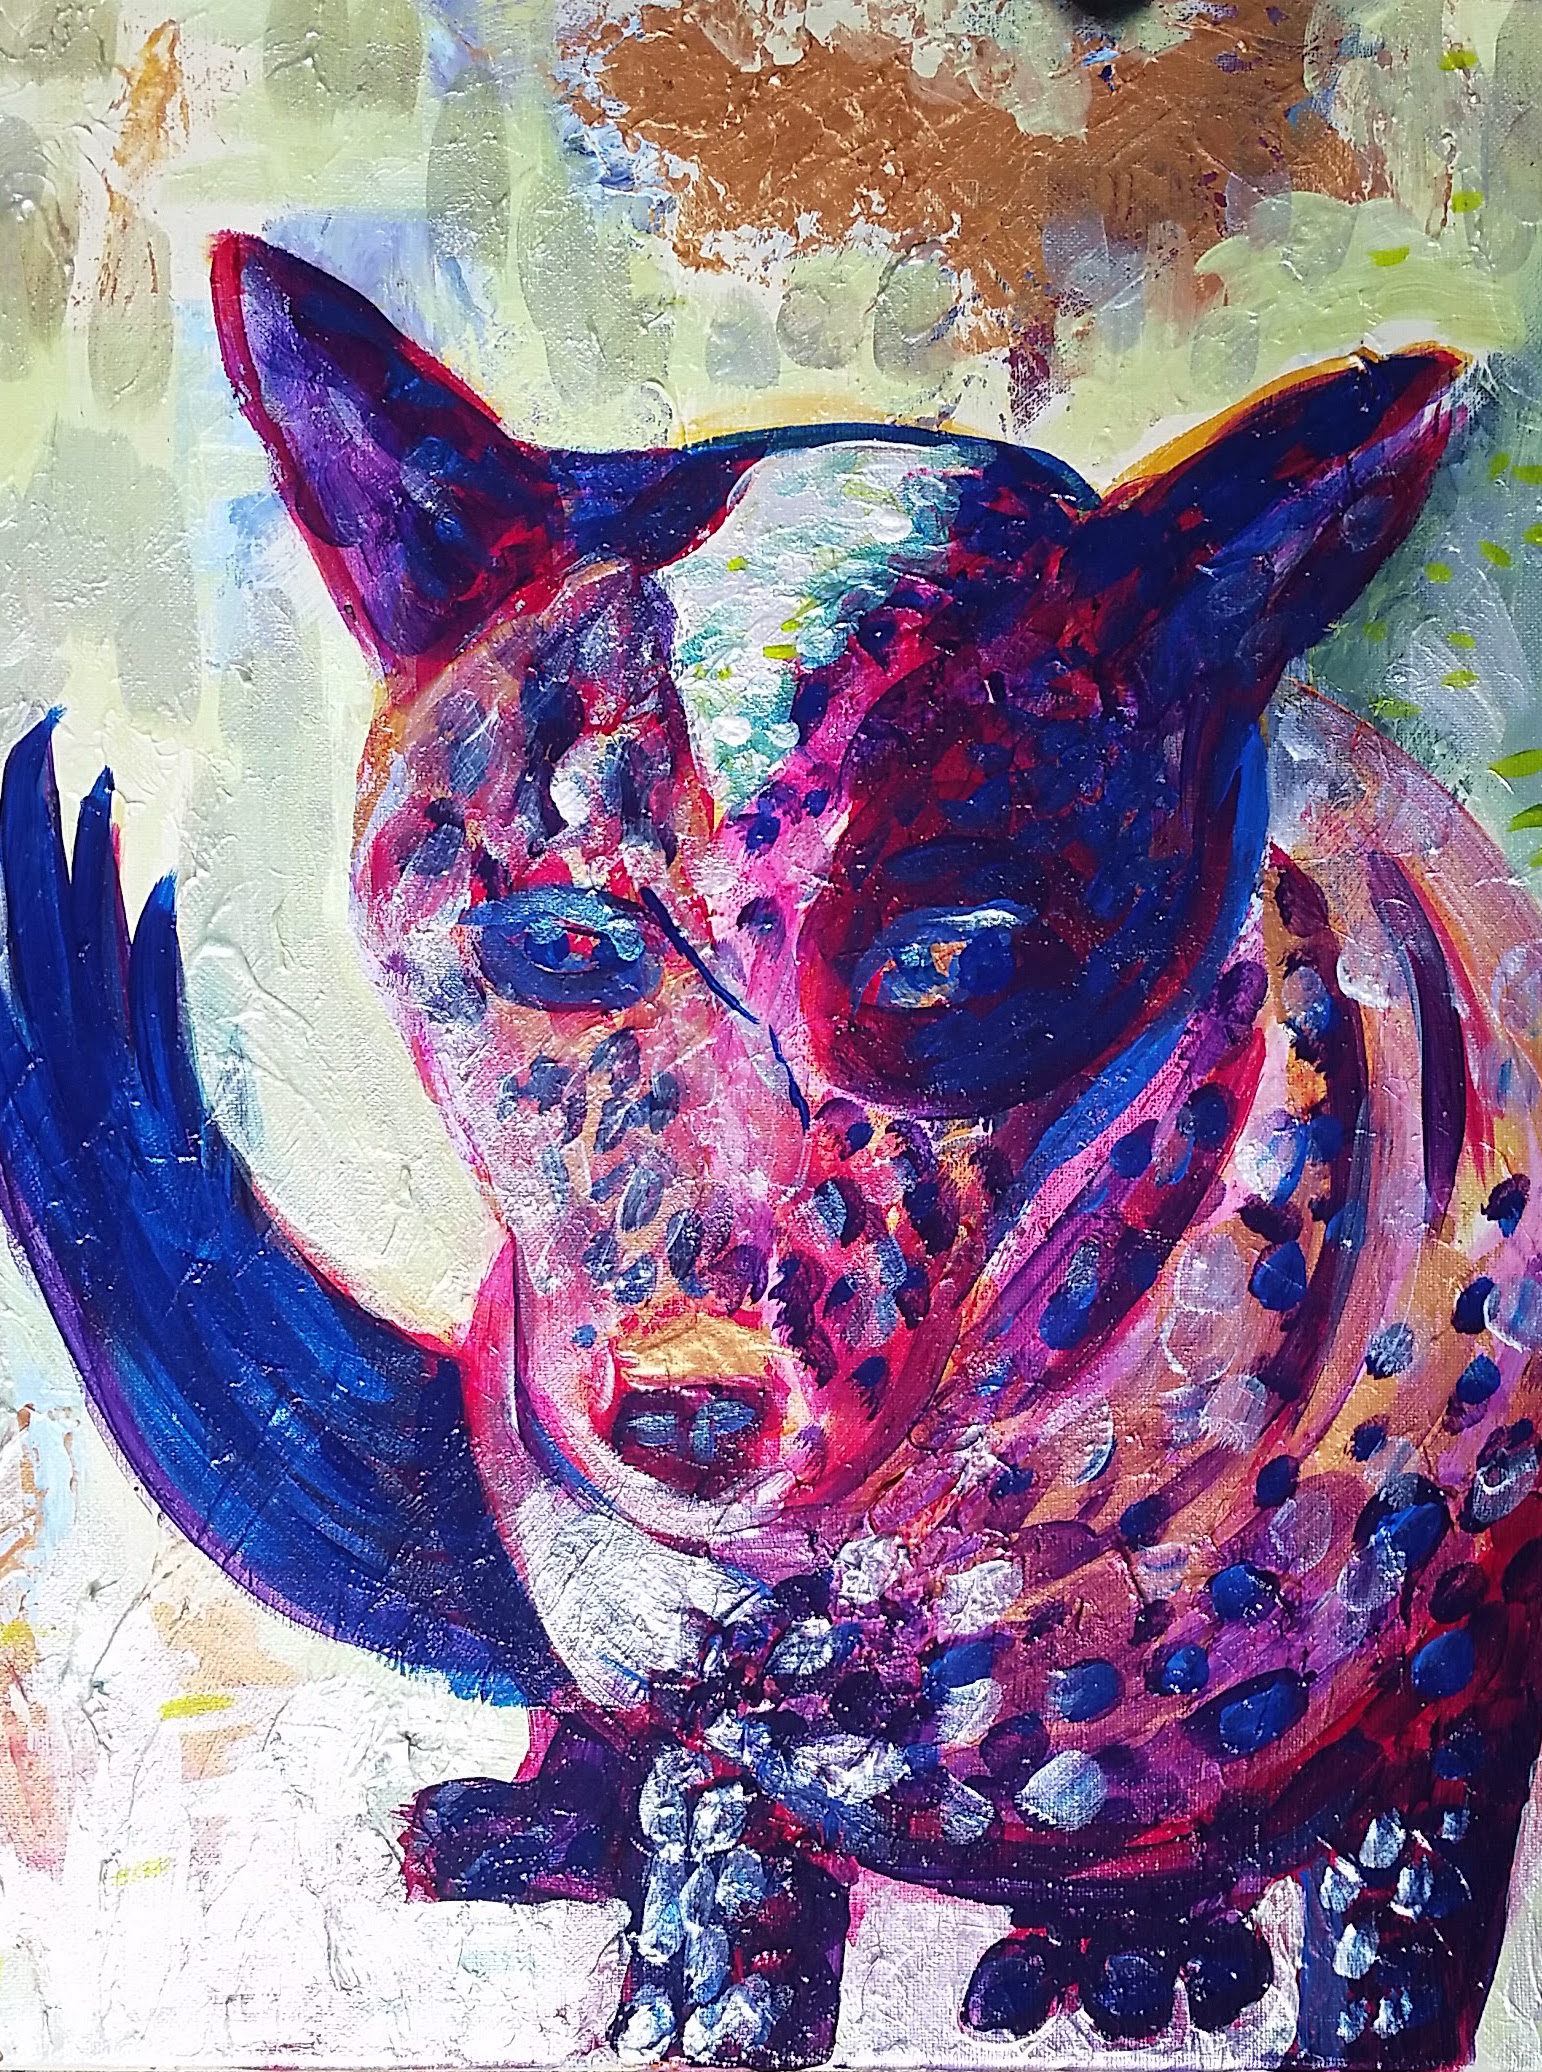 <p>May 2 is a portrait of a blue heeler rescue named May. She lives in a farm on Florida and is about three years old. I used fluid acrylics and iridescent acrylics on canvas applied with brushes and palette knives. I really enjoyed experimenting with different colors and using different [&hellip;]</p>